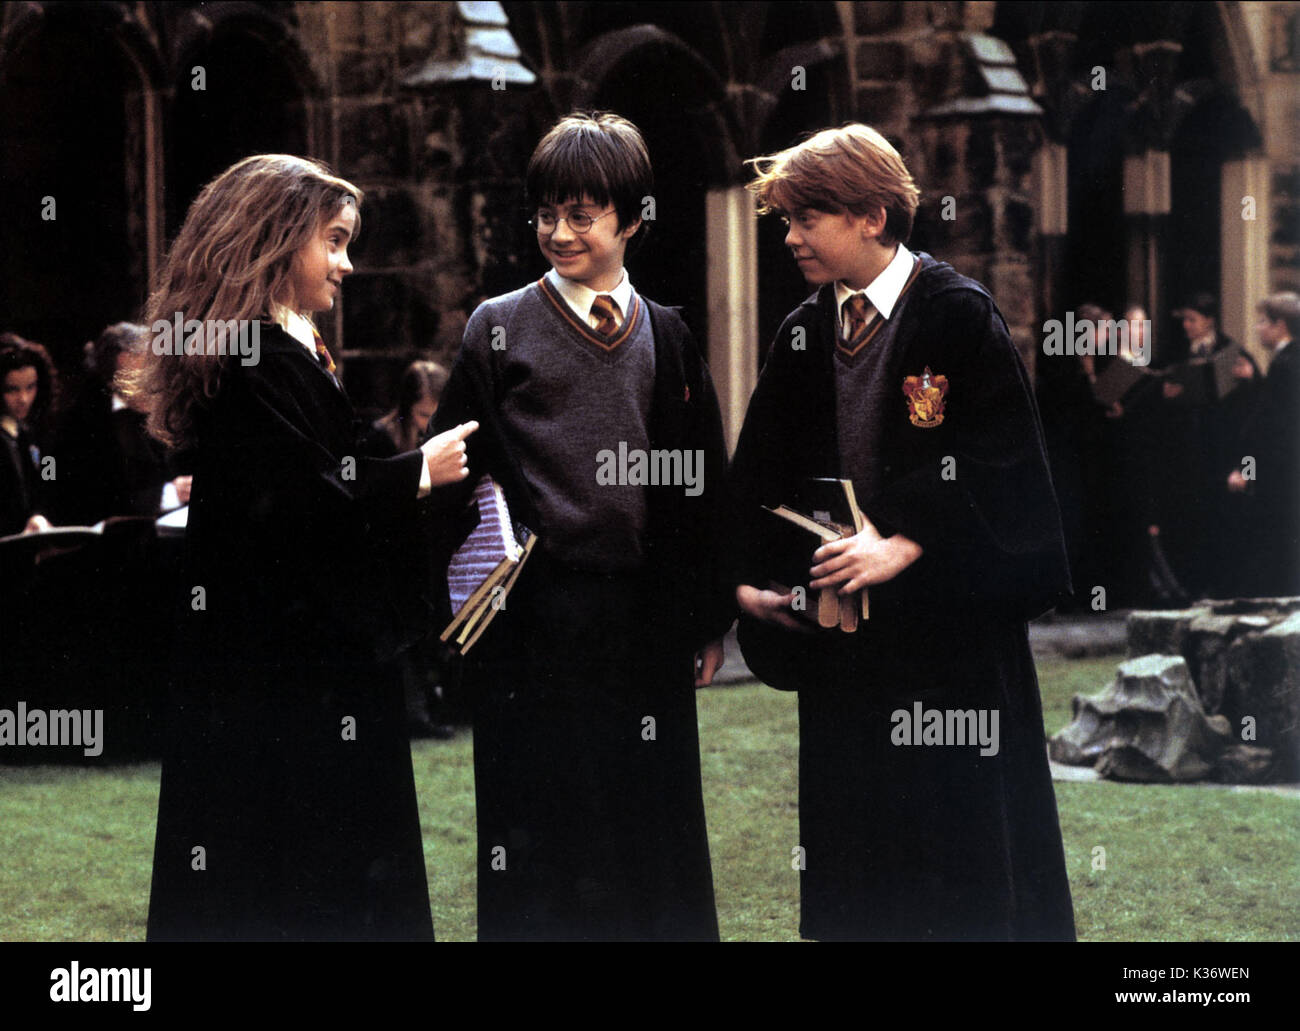 HARRY POTTER AND THE PHILOSOPHER'S STONE [BR / US 2001]  L-R, EMMA WATSON, DANIEL RADCLIFFE, RUPERT GRINT HARRY POTTER AND THE PHILOSOPHER'S STONE [BR / US 2001]  L-R, EMMA WATSON as Hermione Granger, DANIEL RADCLIFFE as Harry Potter, RUPERT GRINT as Ron Weasley - Stock Image